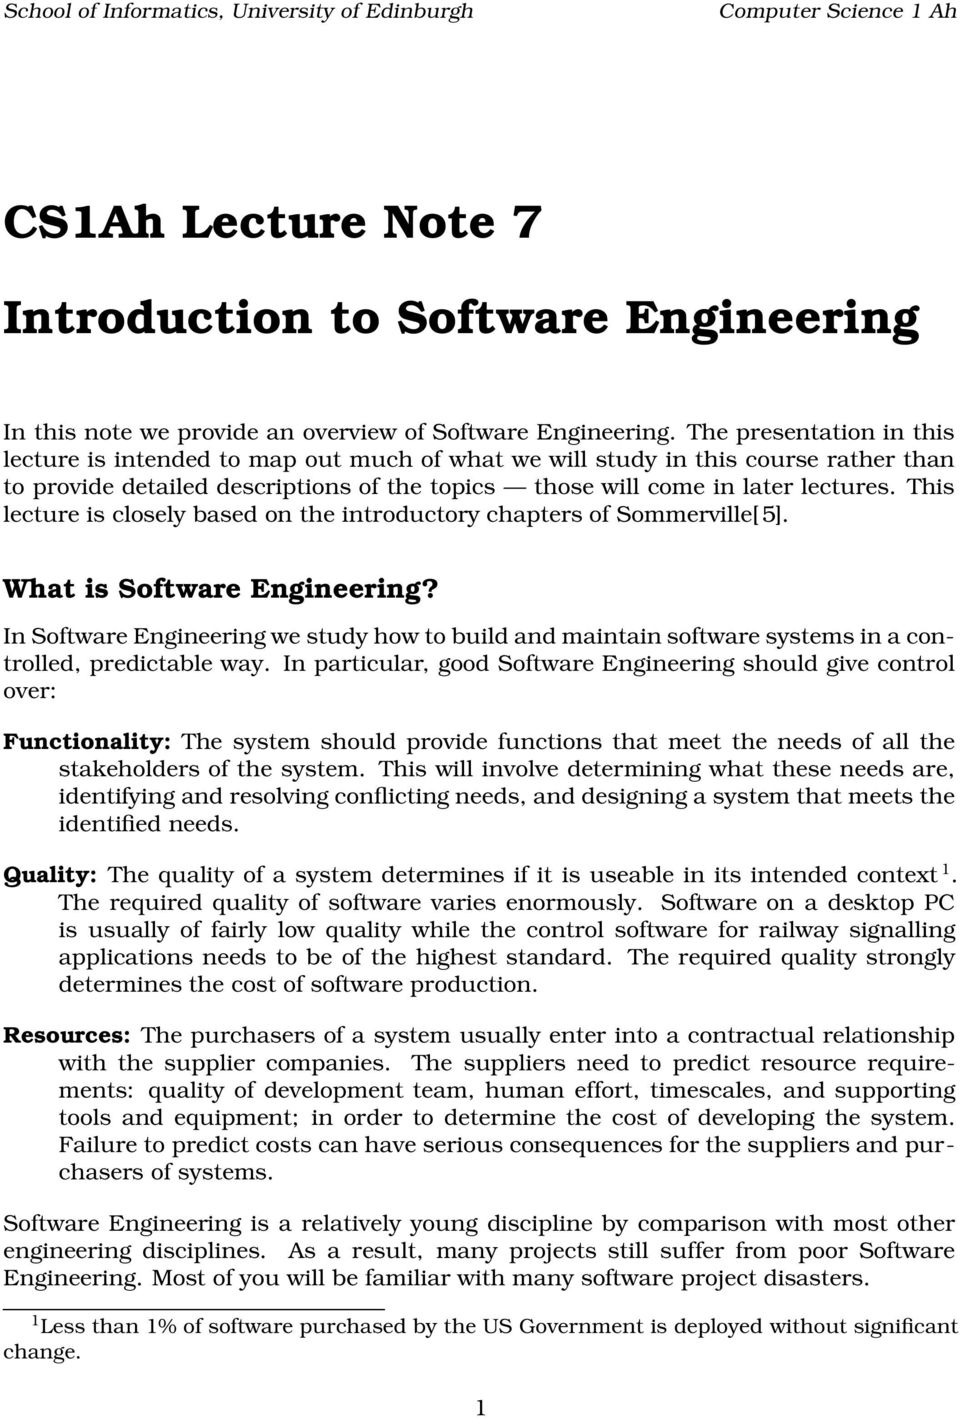 Introduction to Software Engineering - PDF